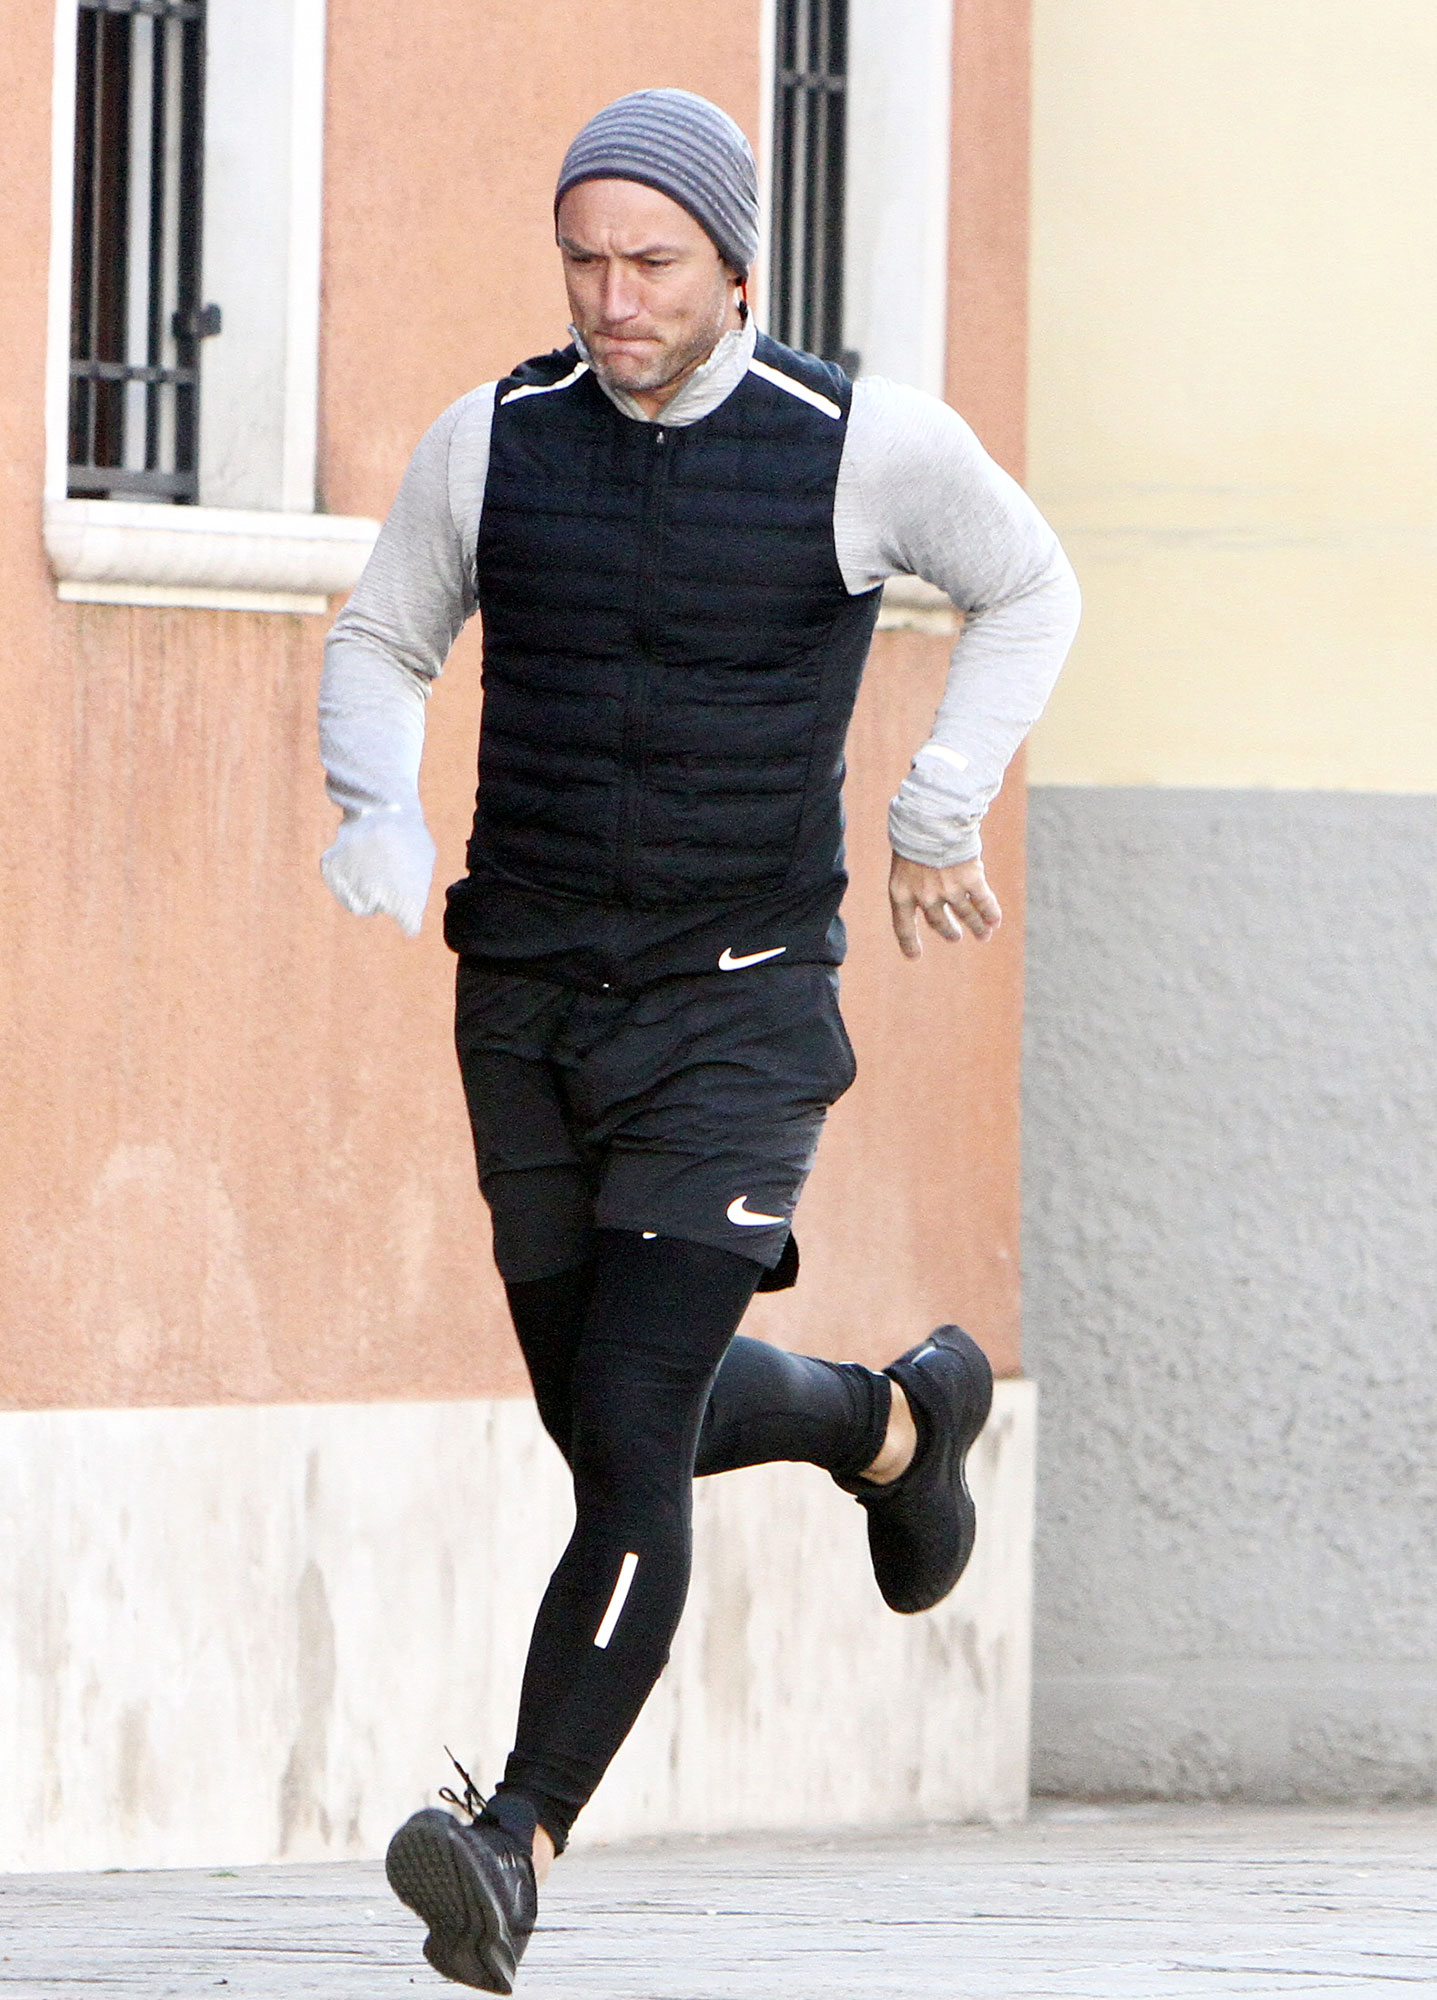 Jude Law Celebrity Joggers - On January 14, 2019, the British actor — and dedicated jogger — took his trainers for a spin on the streets of Venice.